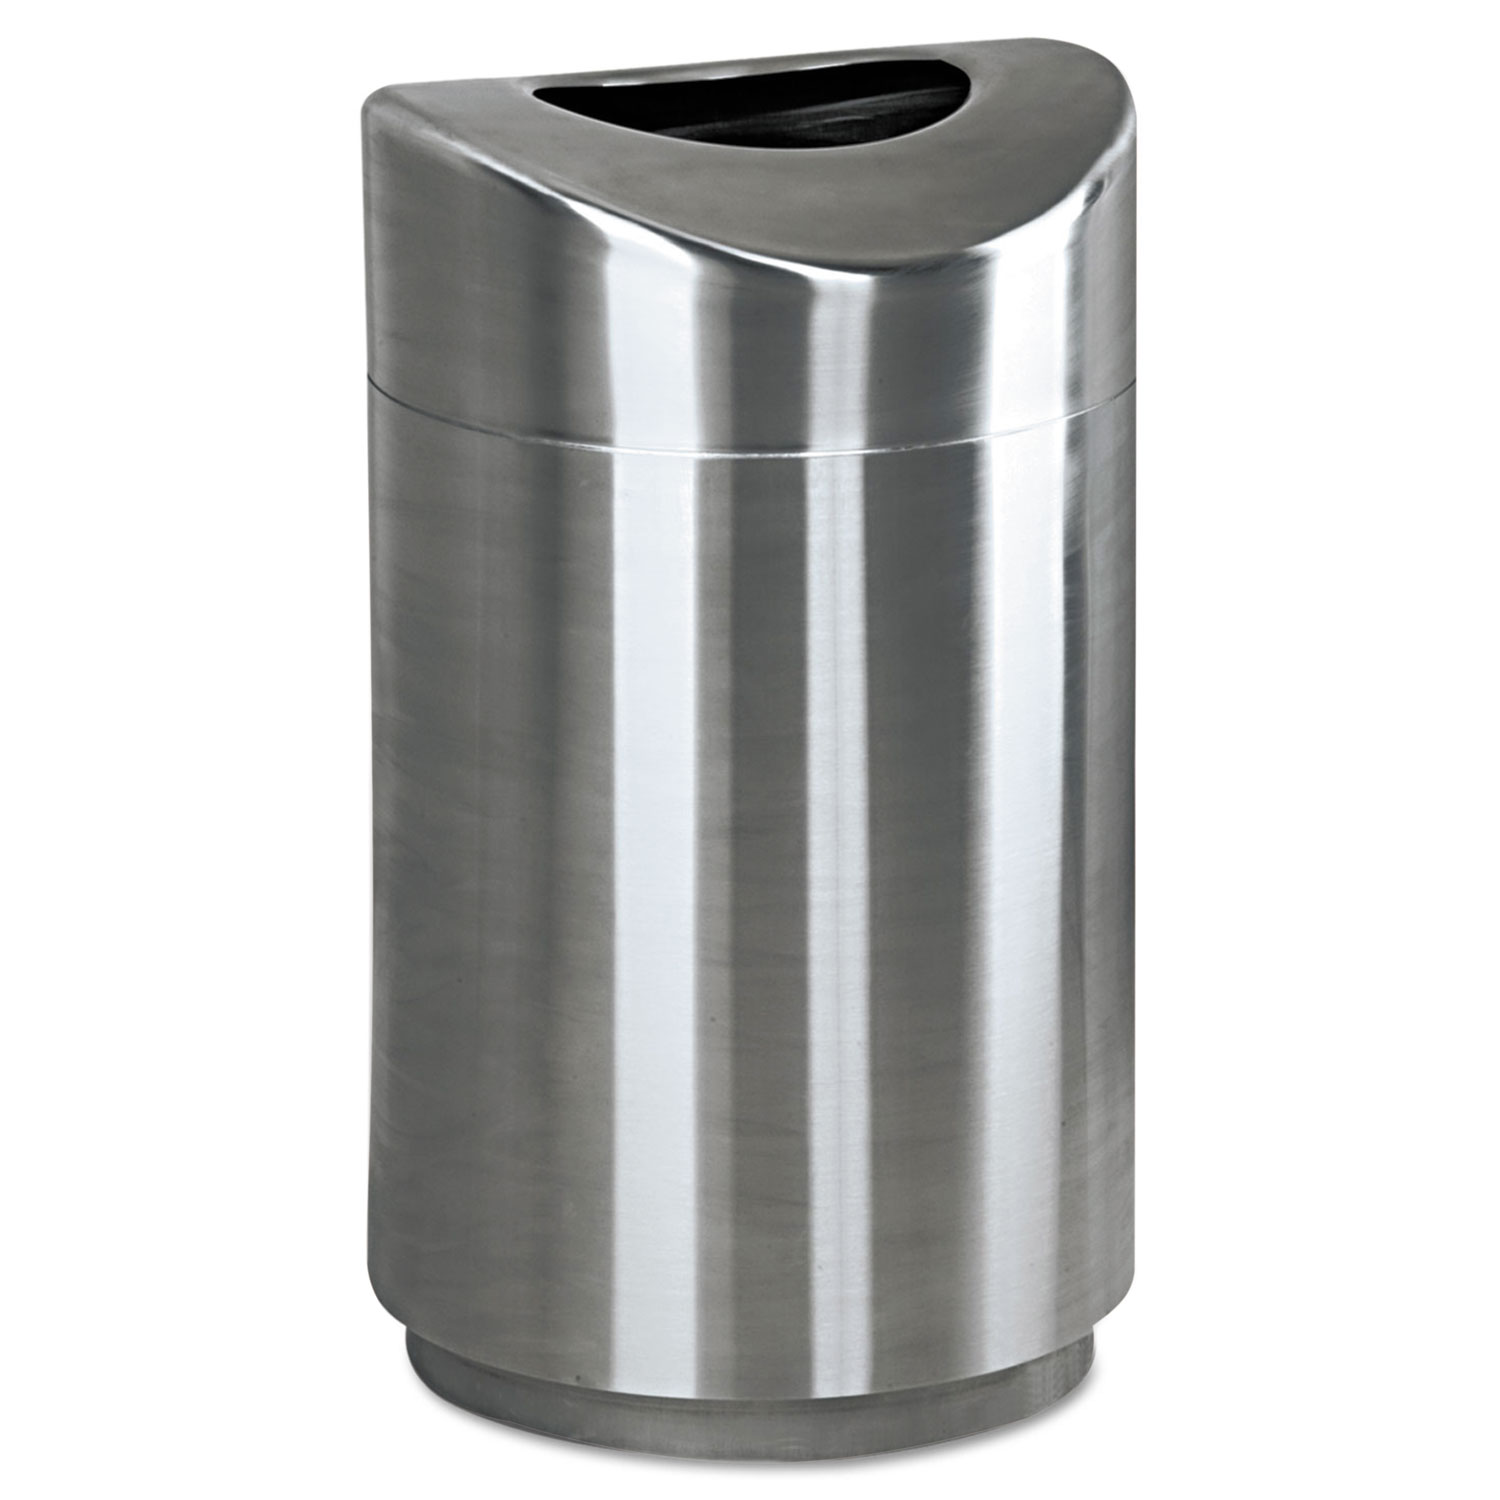 Eclipse Open Top Waste Receptacle, Round, Steel, 30 gal, Stainless Steel